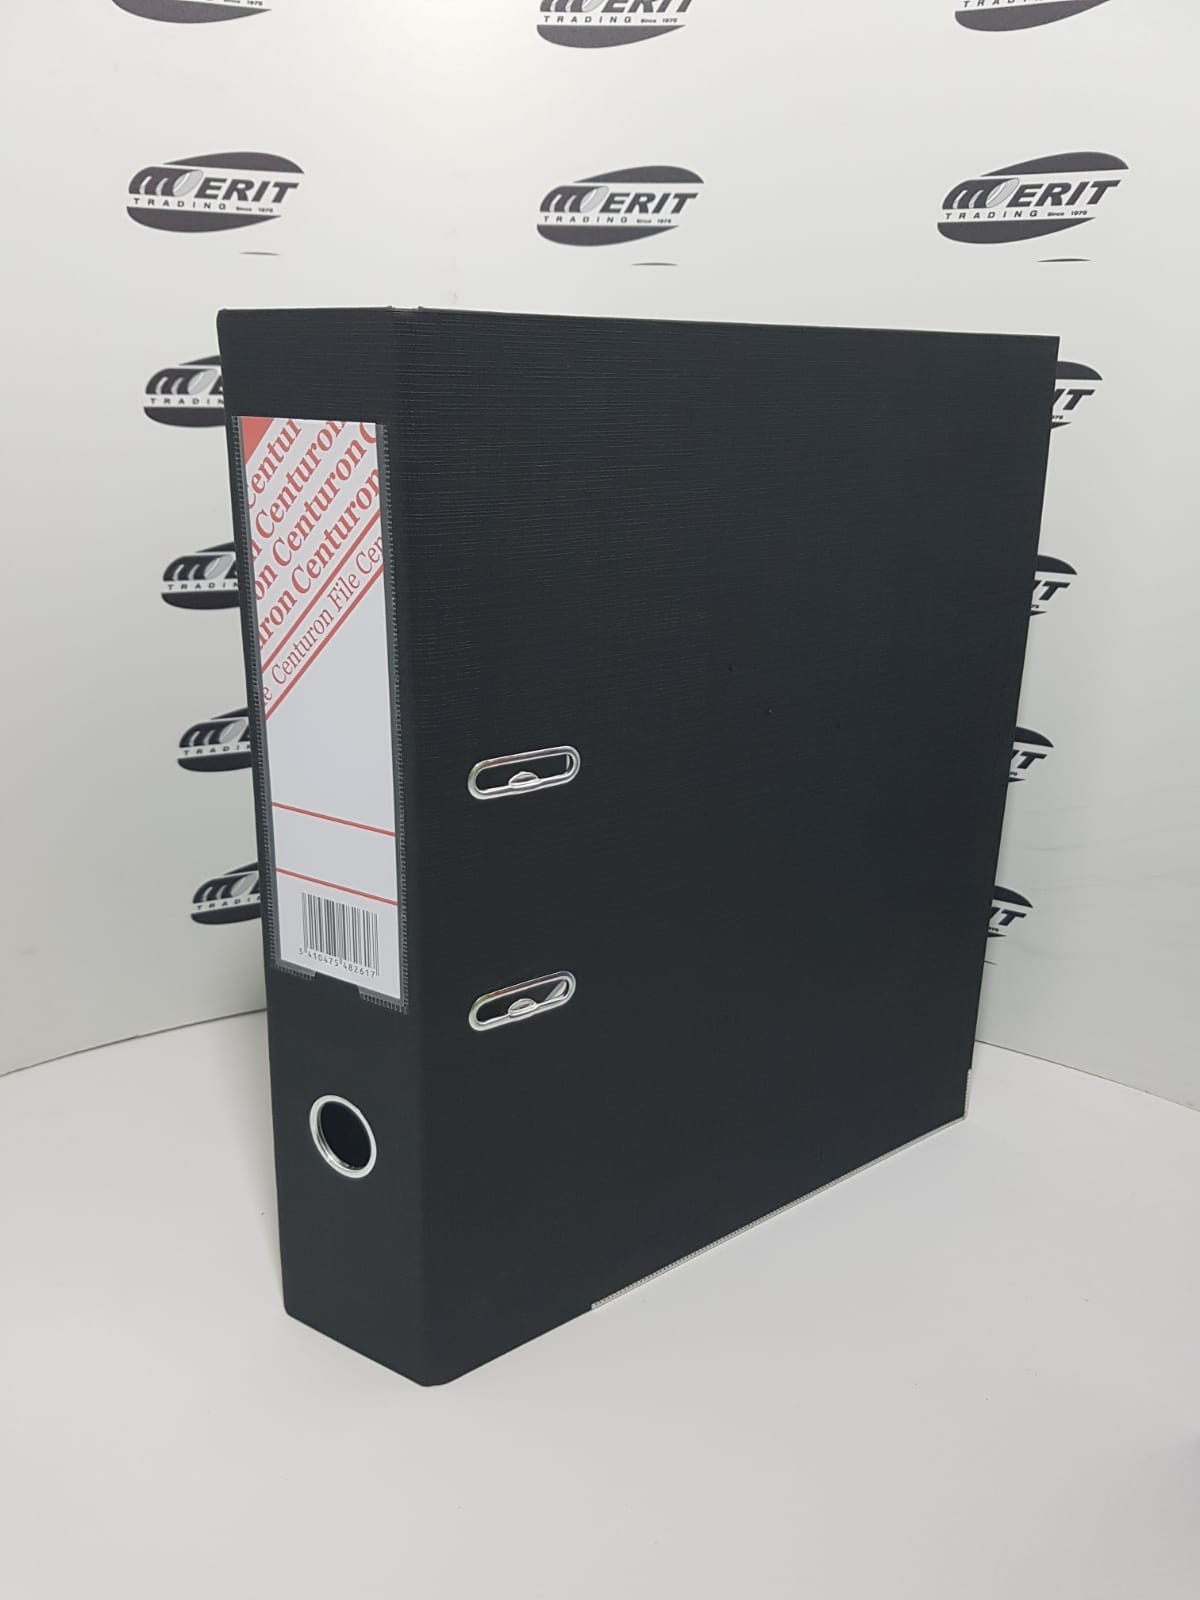 Arch File F/S size PP/PP - 3 inch - Black ( 13 )